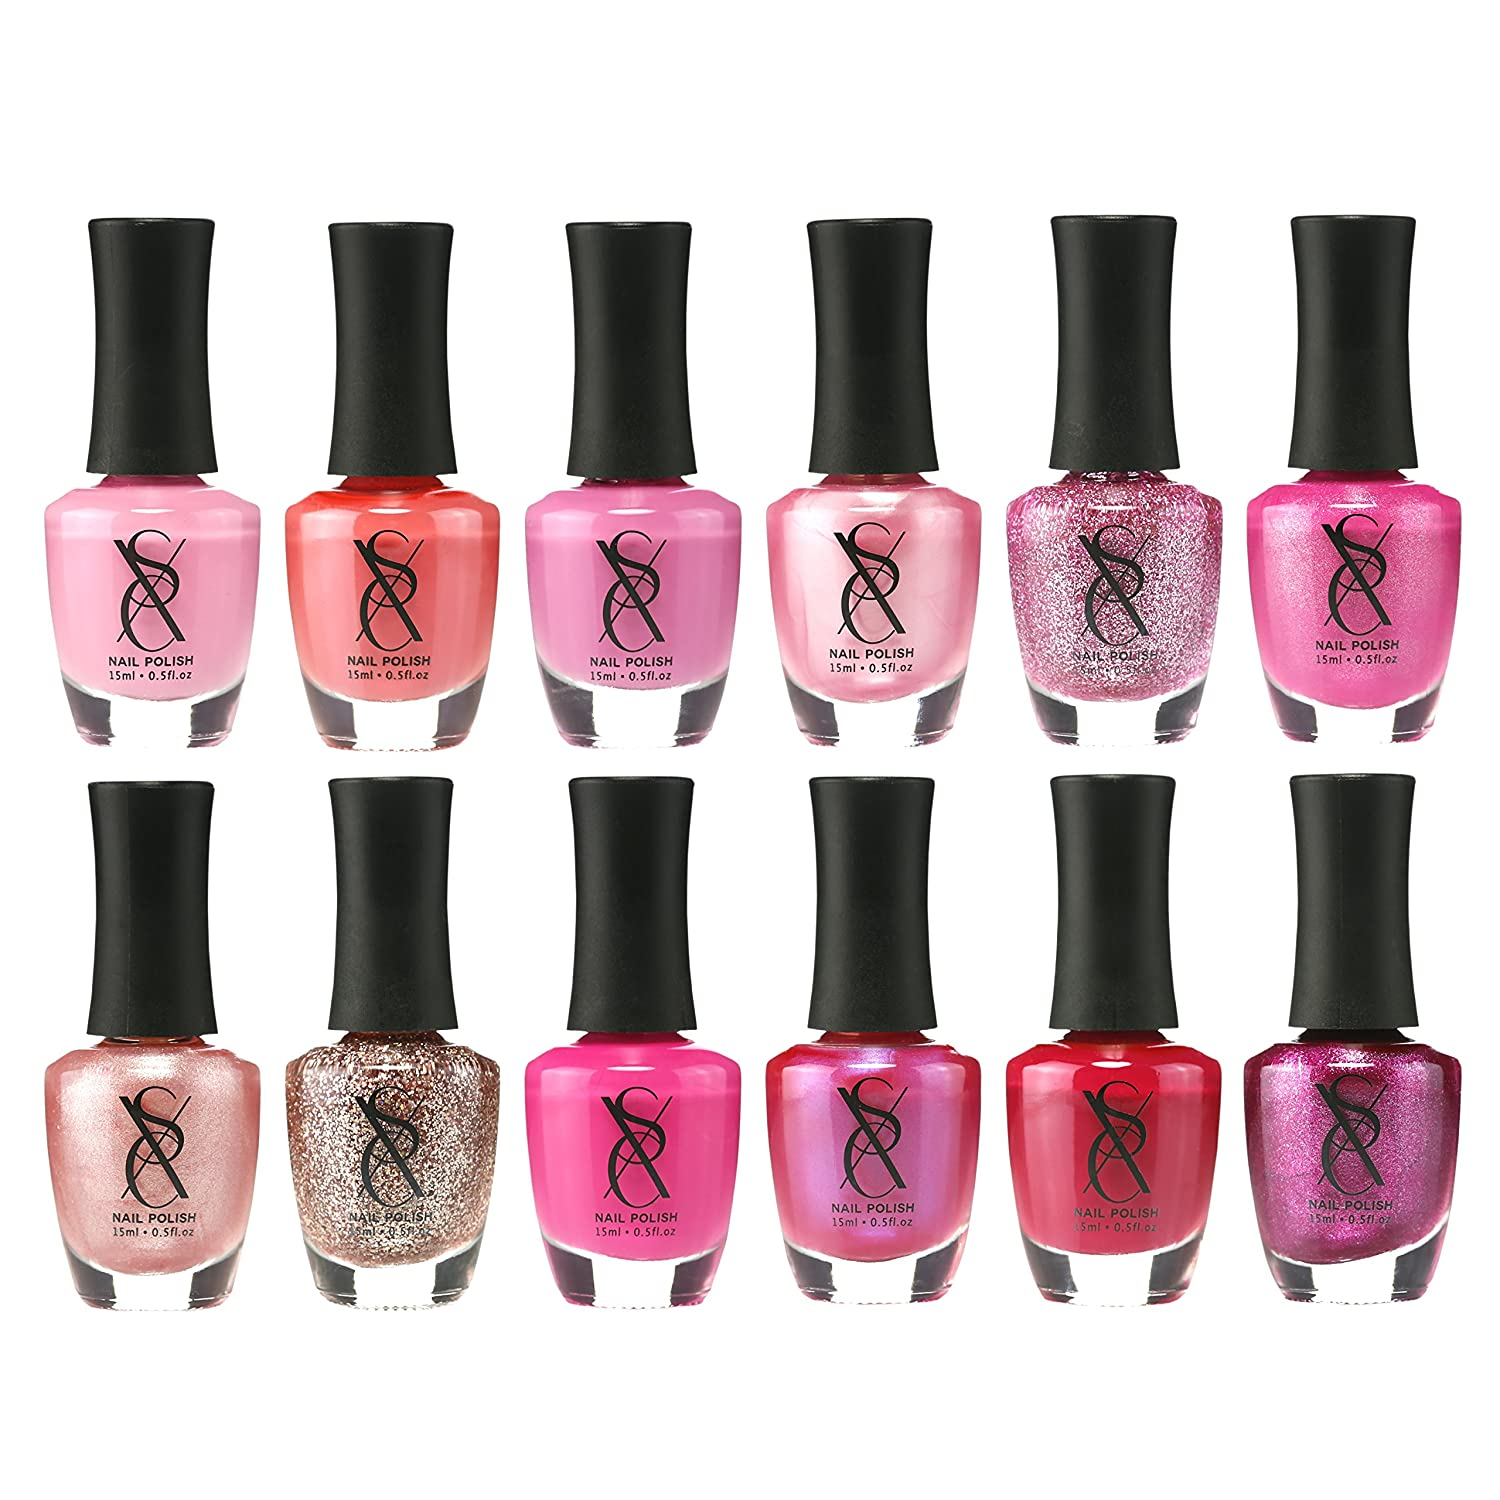 SXC Cosmetics Nail Polish Set, 12 Pink Shades 15ml/0.5oz Full Size Nail Lacquer Gift lot, Perfect Gift for Baby Shower